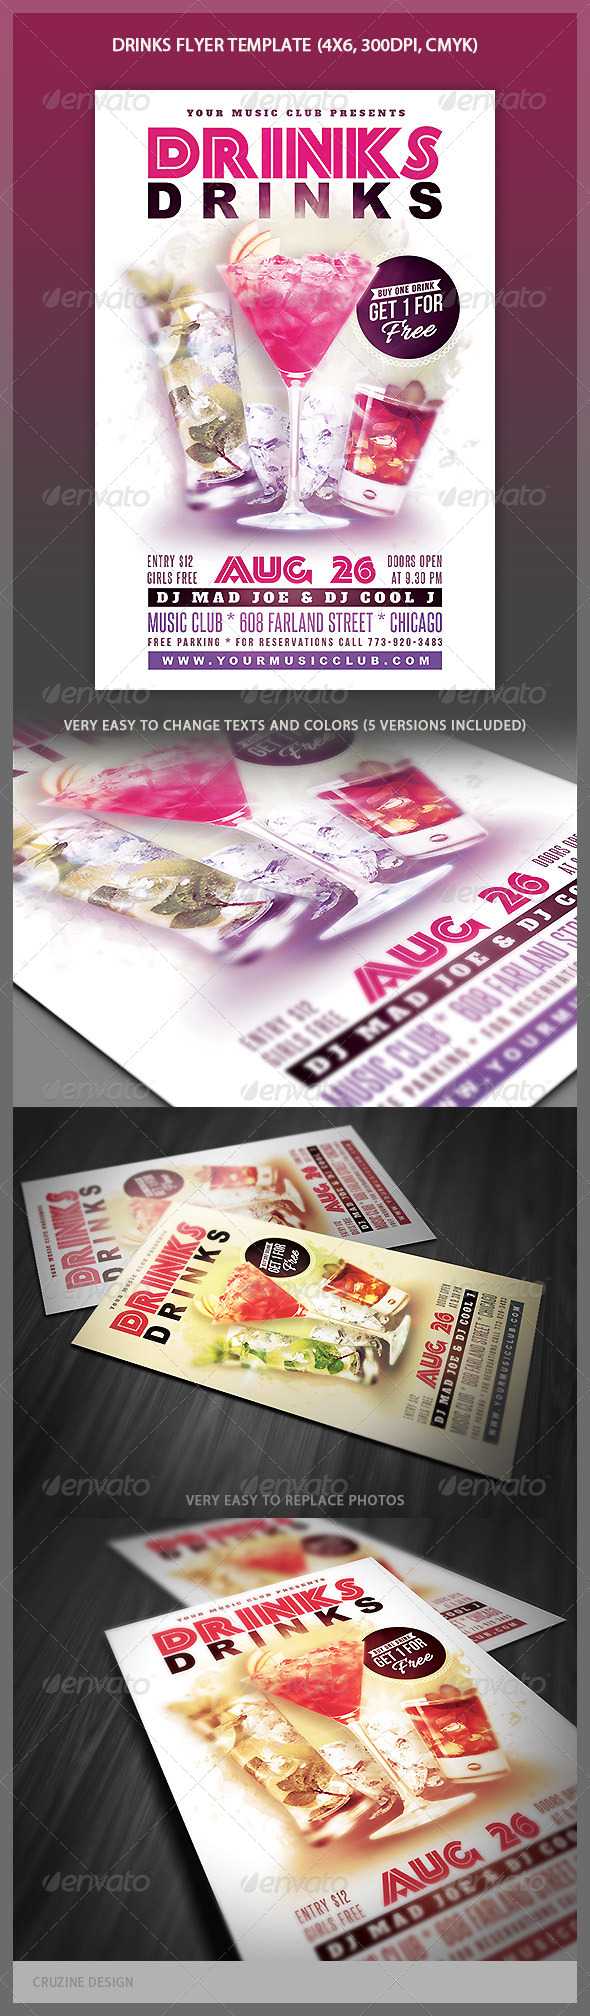 GraphicRiver Drinks Flyer Template 4423671